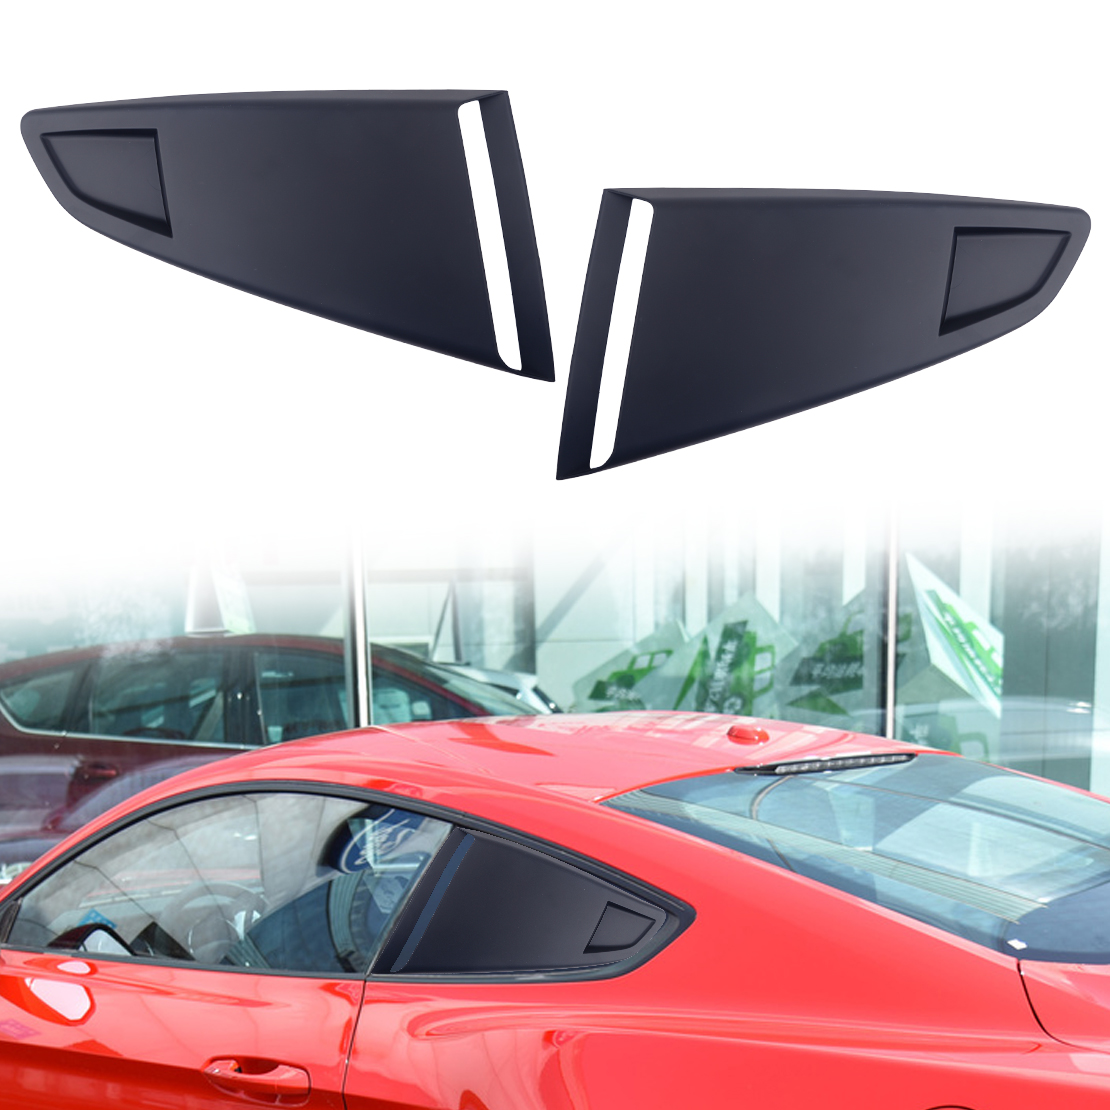 DWCX 1Pair Black Plastic Car Window Quarter Rear Louver Side Vent Scoop Cover Fit For <font><b>Ford</b></font> <font><b>Mustang</b></font> <font><b>2015</b></font> 2016 2017 2018 image